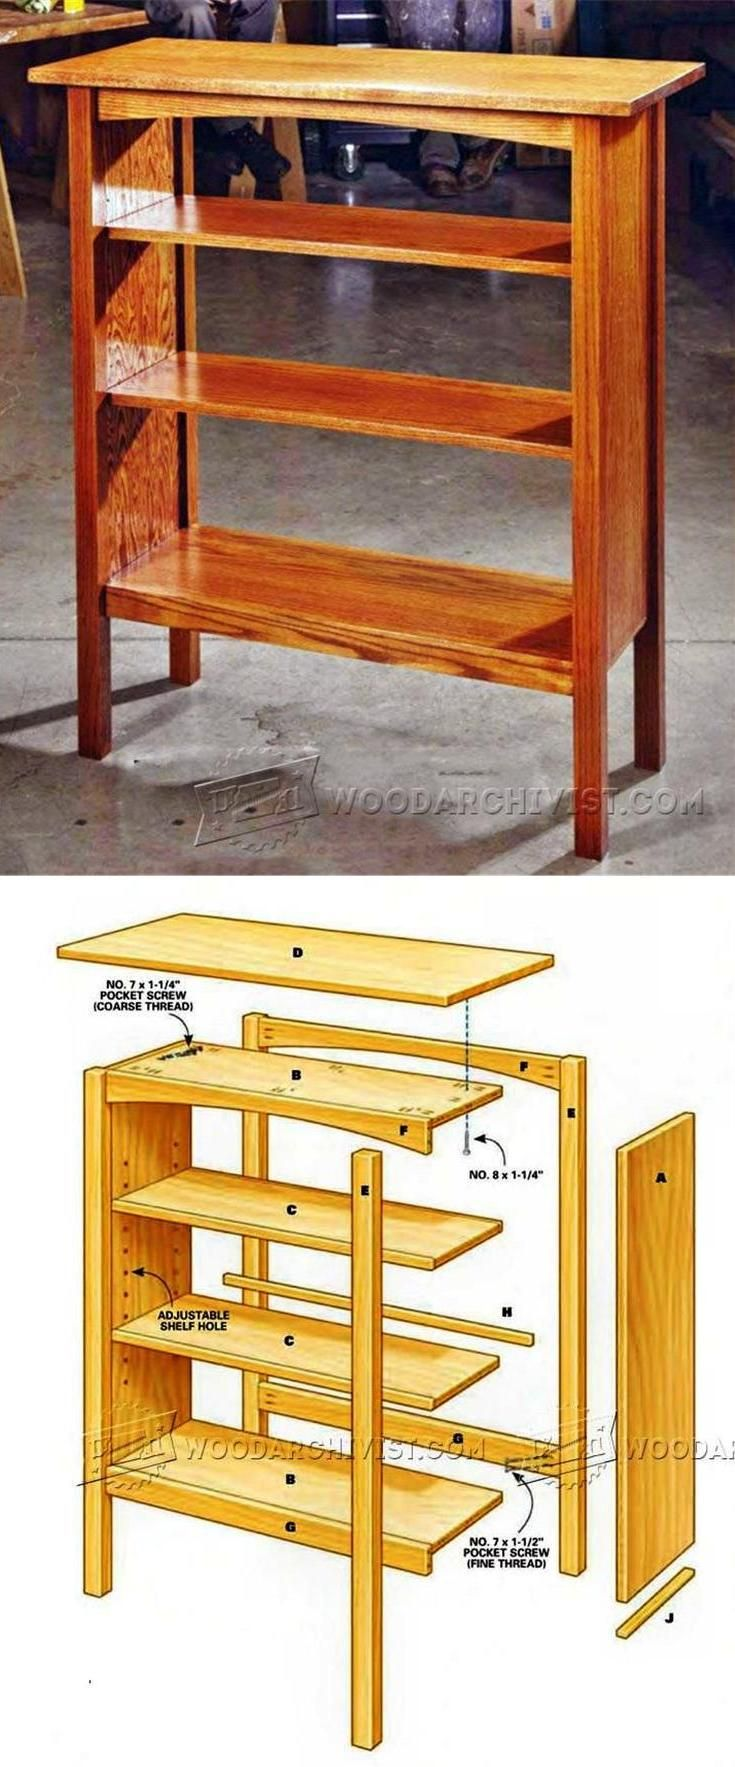 Simple Bookcase Plans - Furniture Plans and Projects | WoodArchivist.com - Best 20+ Bookcase Plans Ideas On Pinterest Build A Bookcase